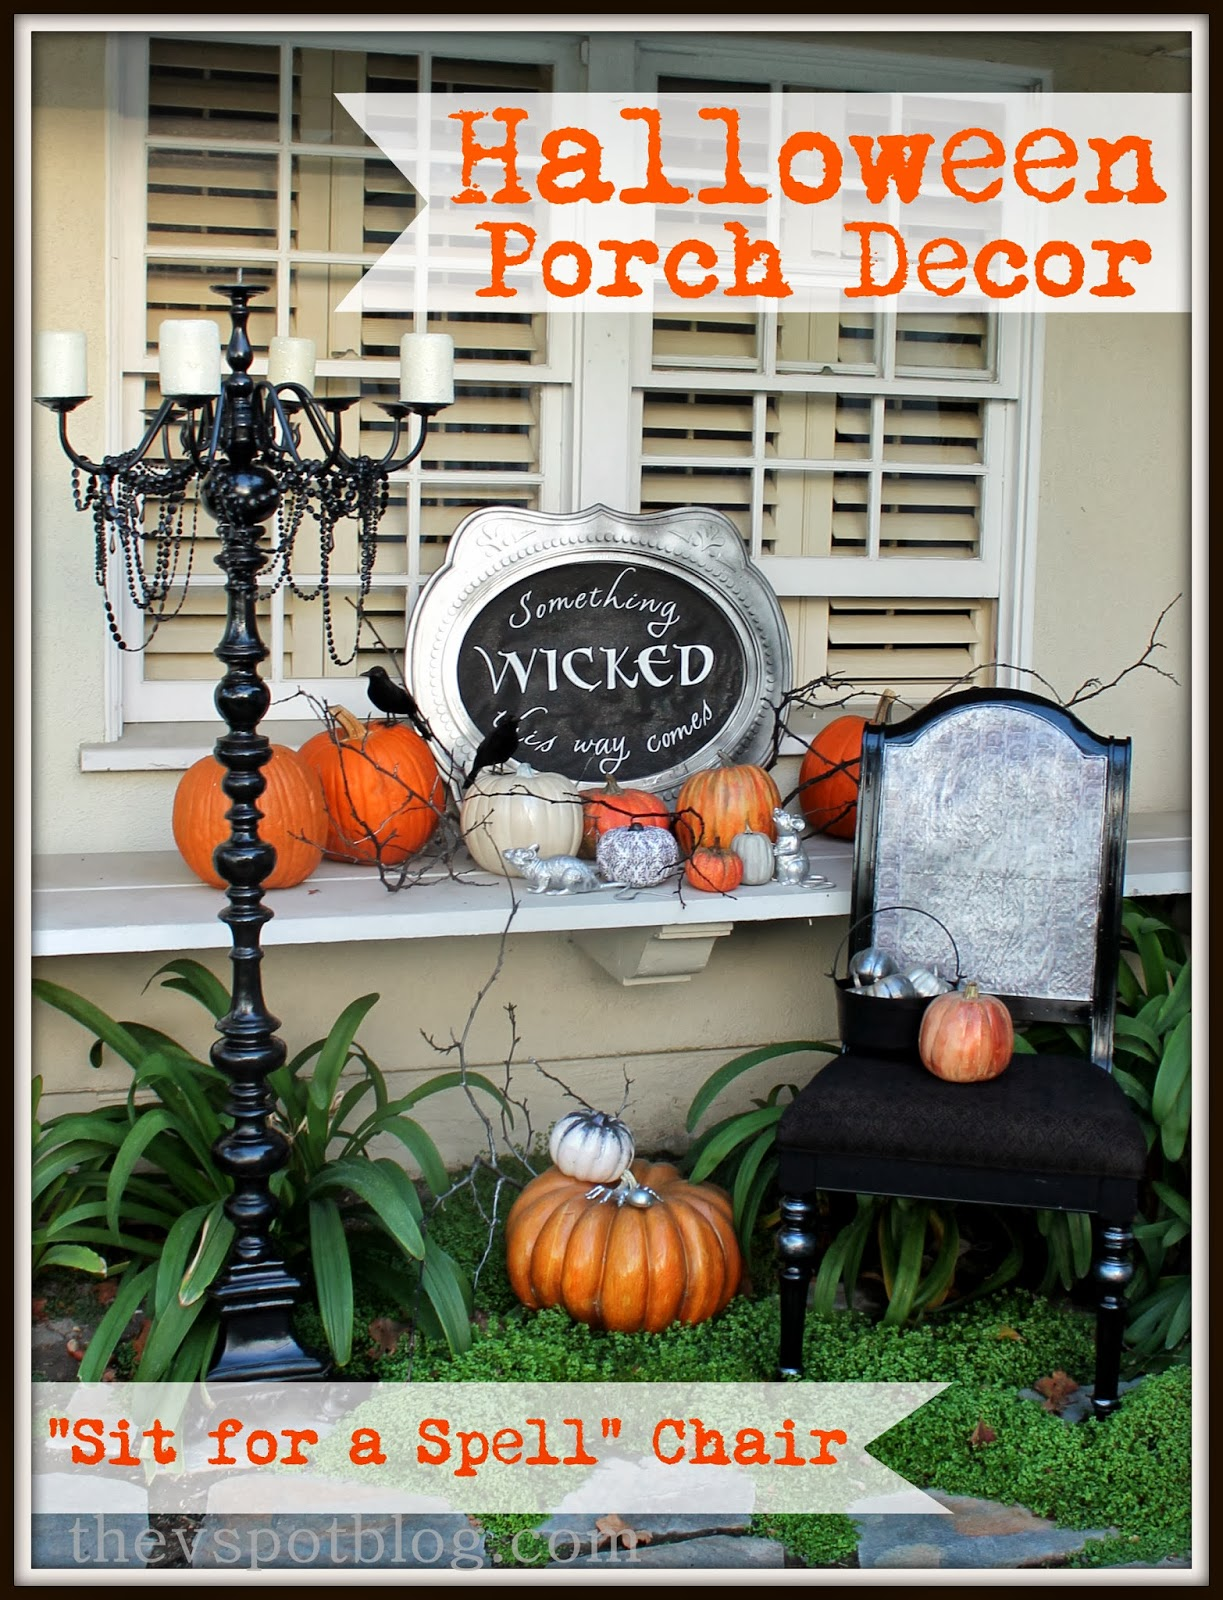 spooky porch decor and a halloween chair - Halloween Porch Decorating Ideas